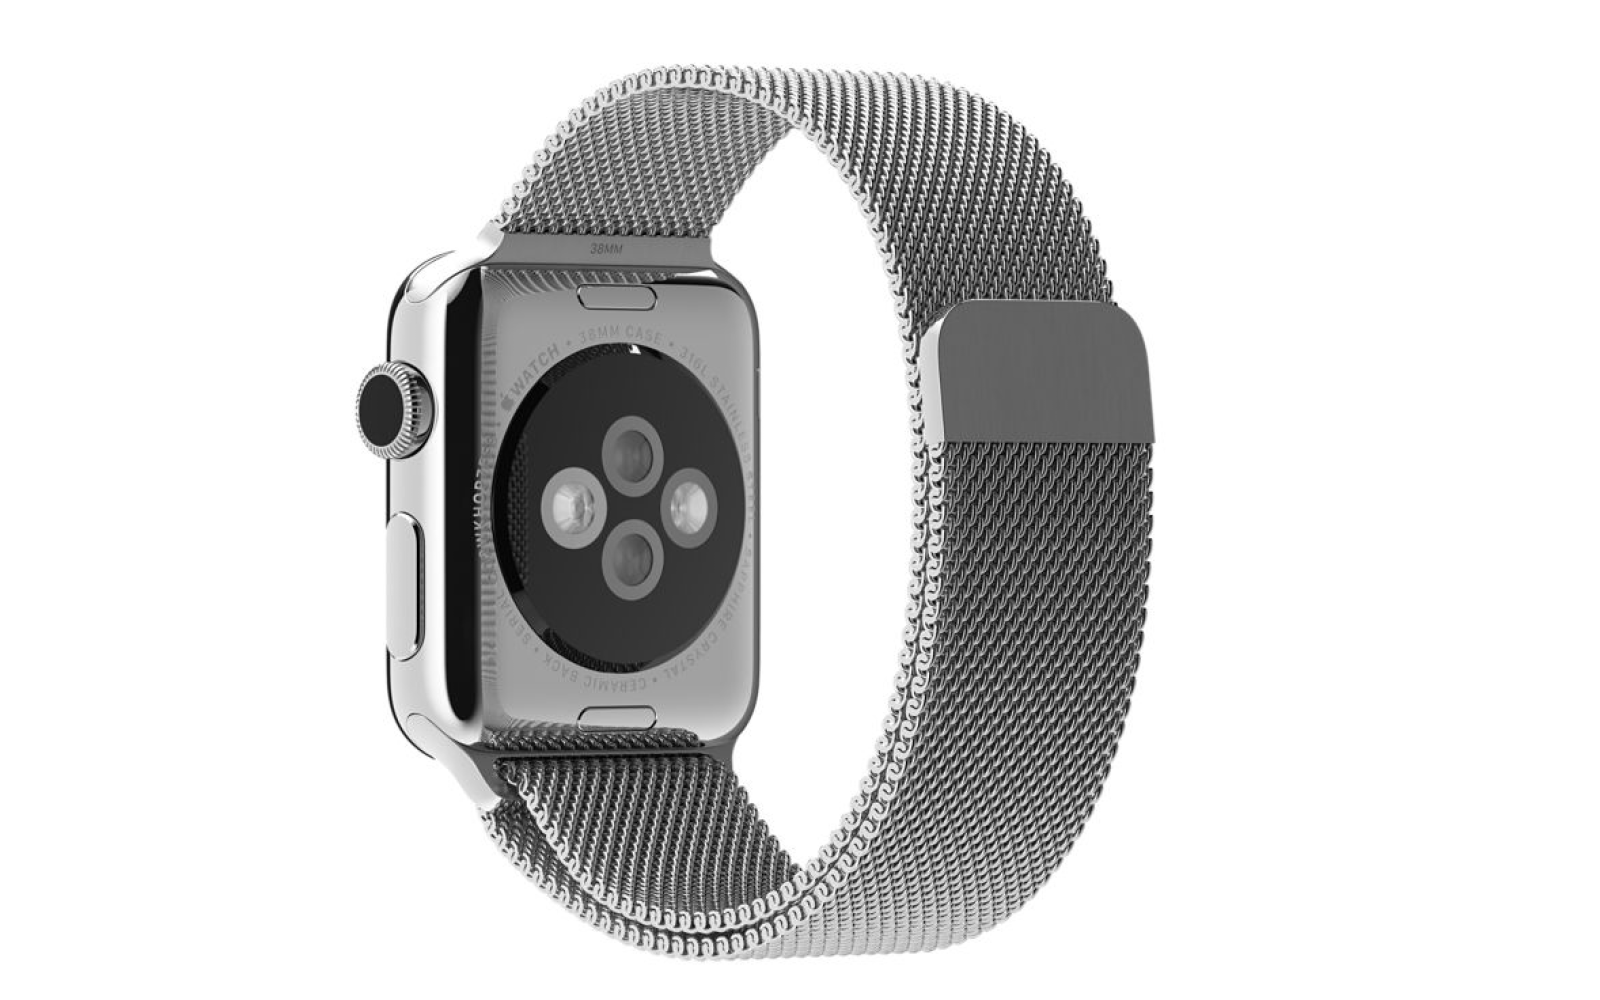 Apple Releases Watch Battery Test Results